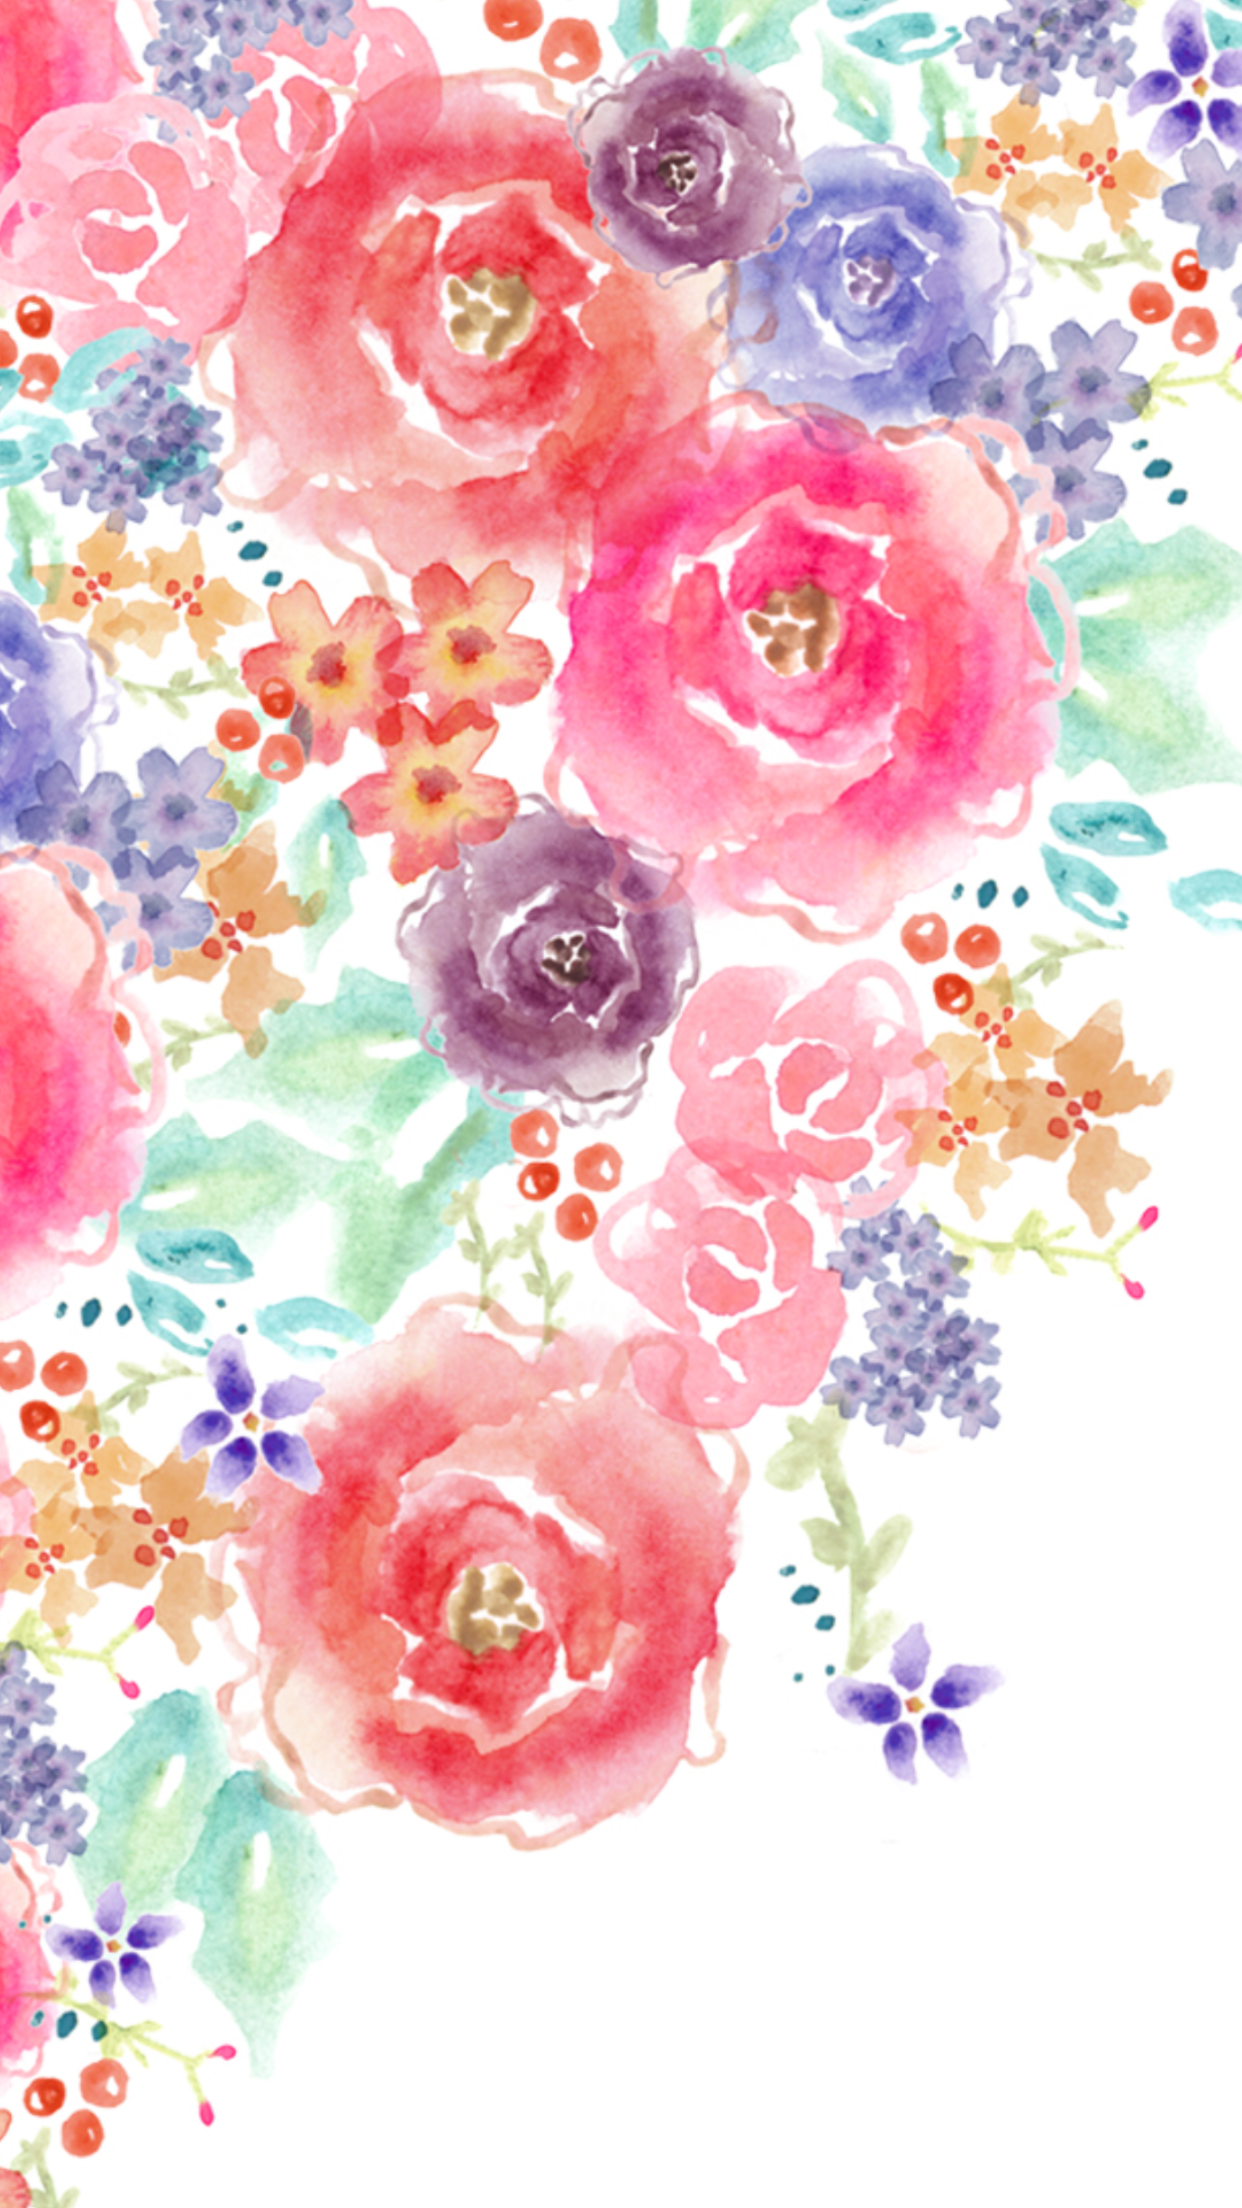 Pin by Megan Kleinert on Crafts Watercolor flower